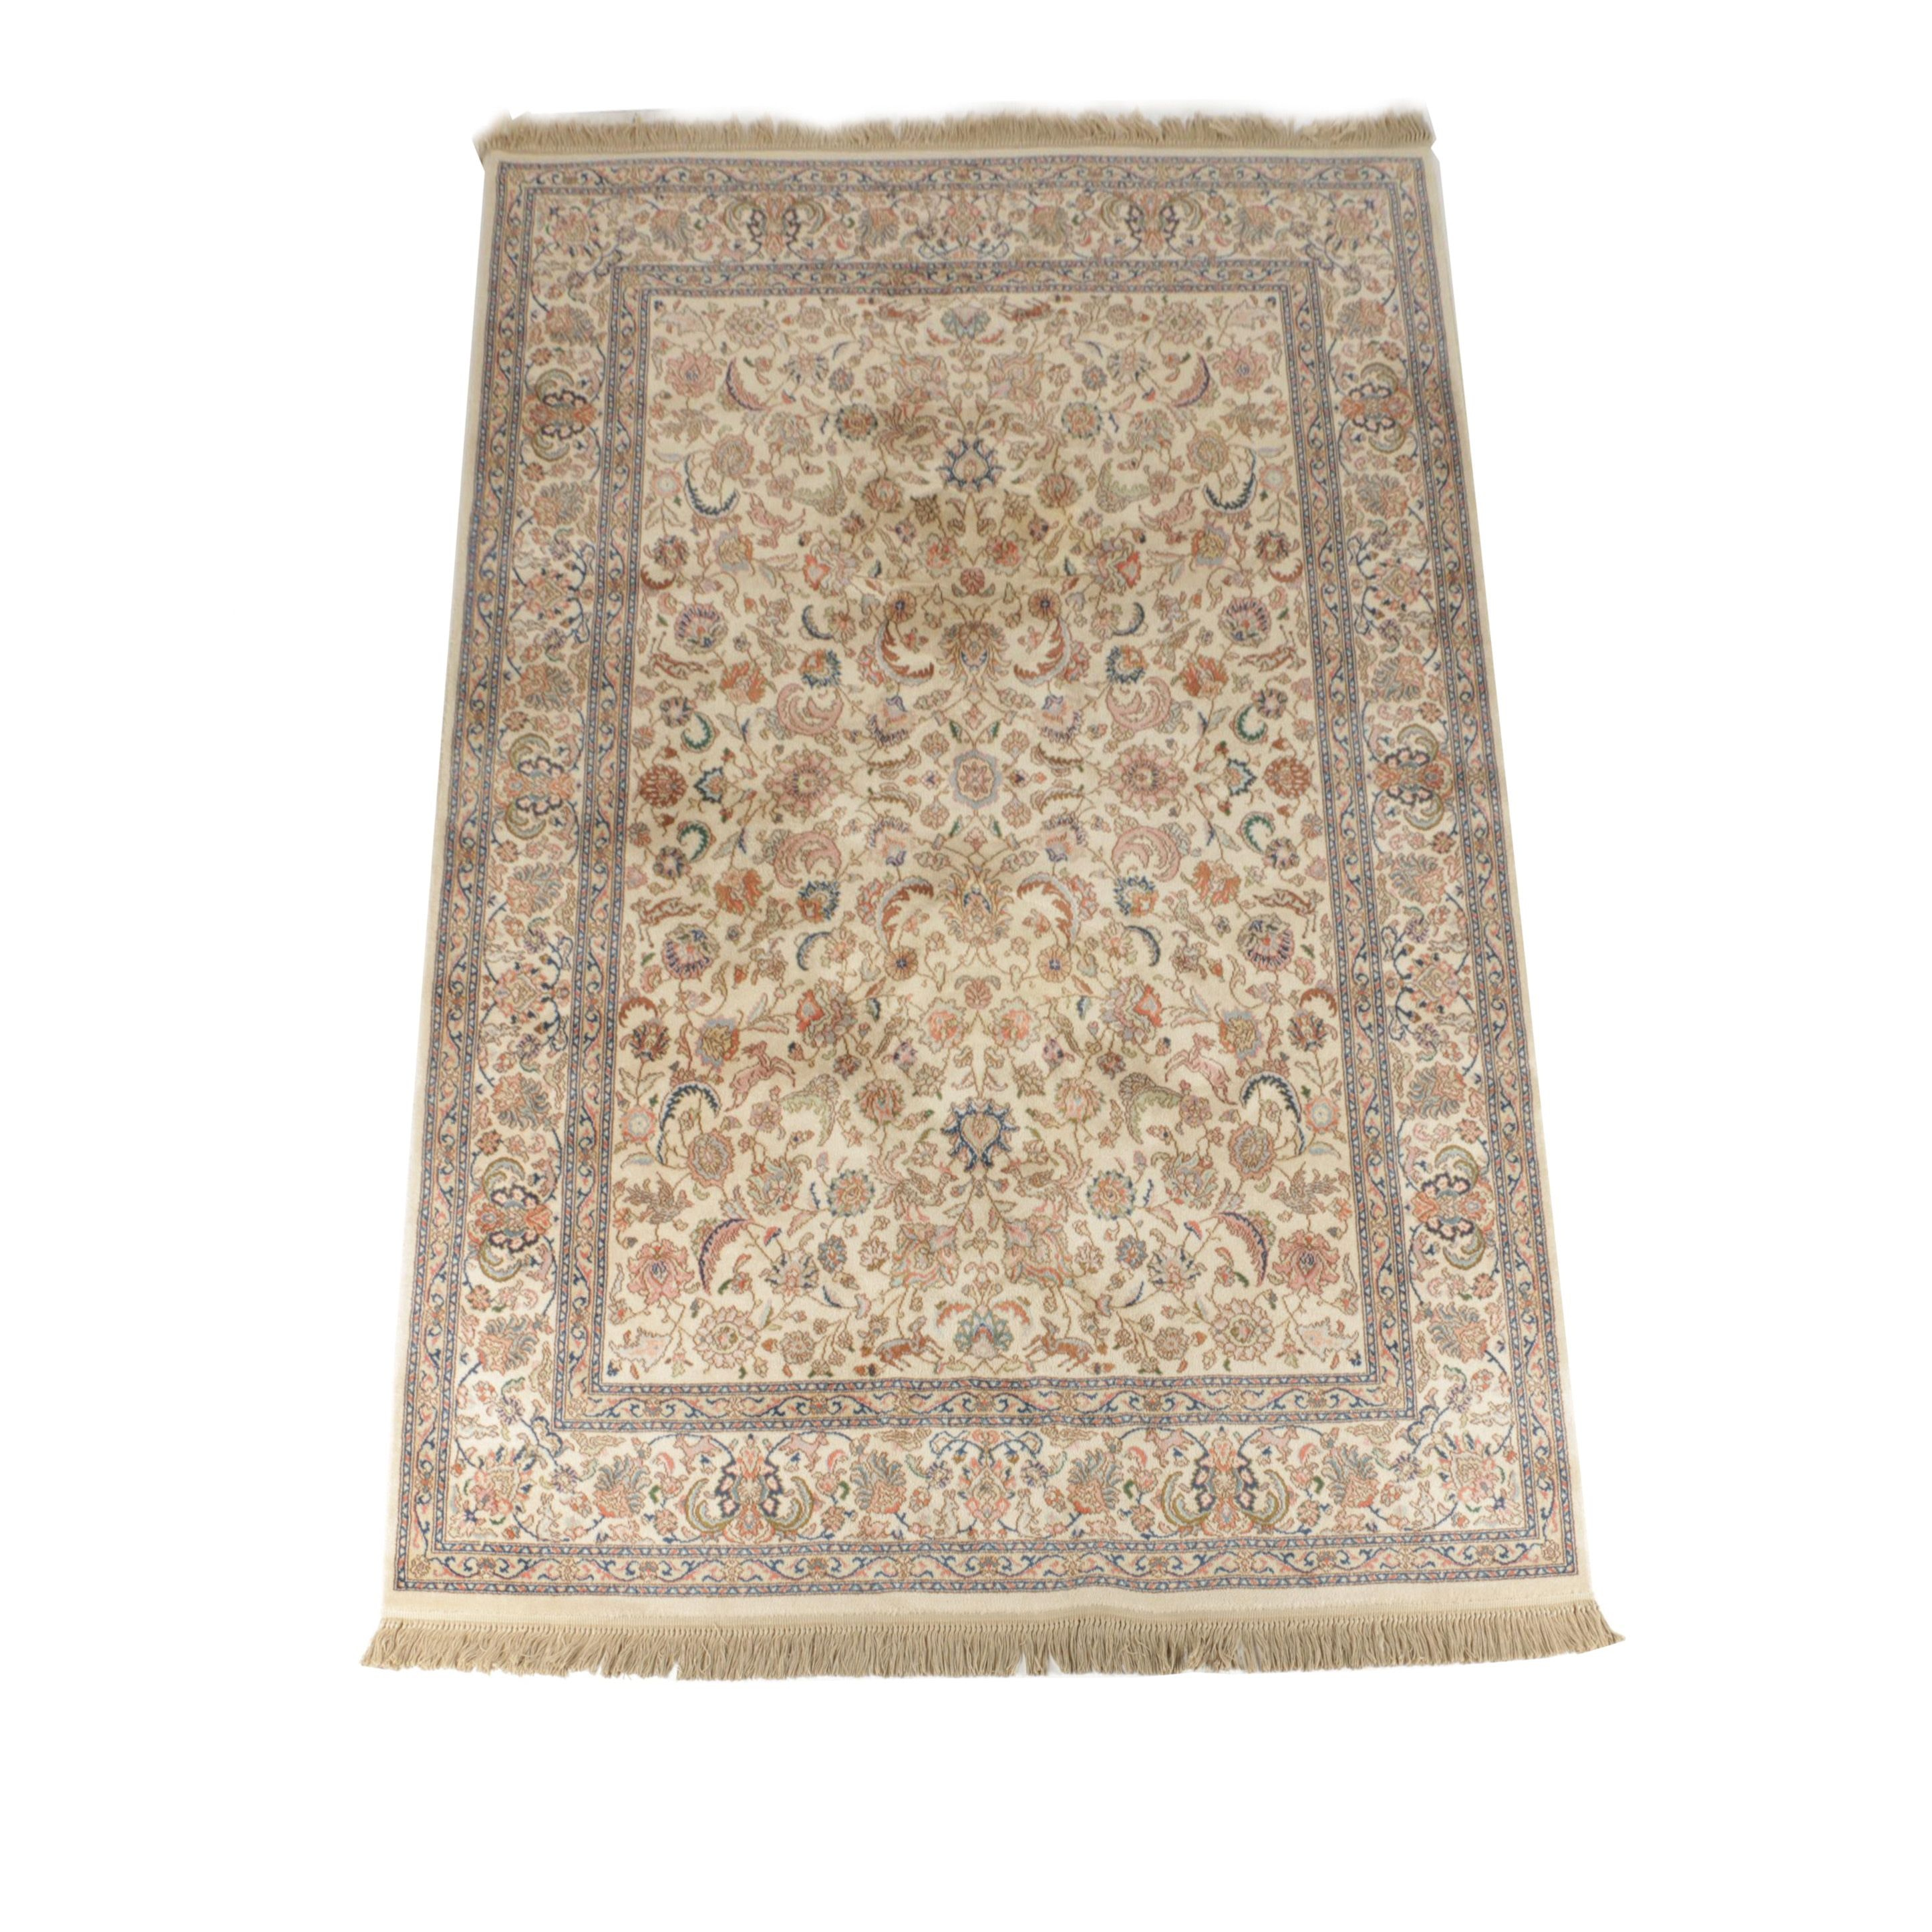 Machine Made Karastan Tabriz Area Rug